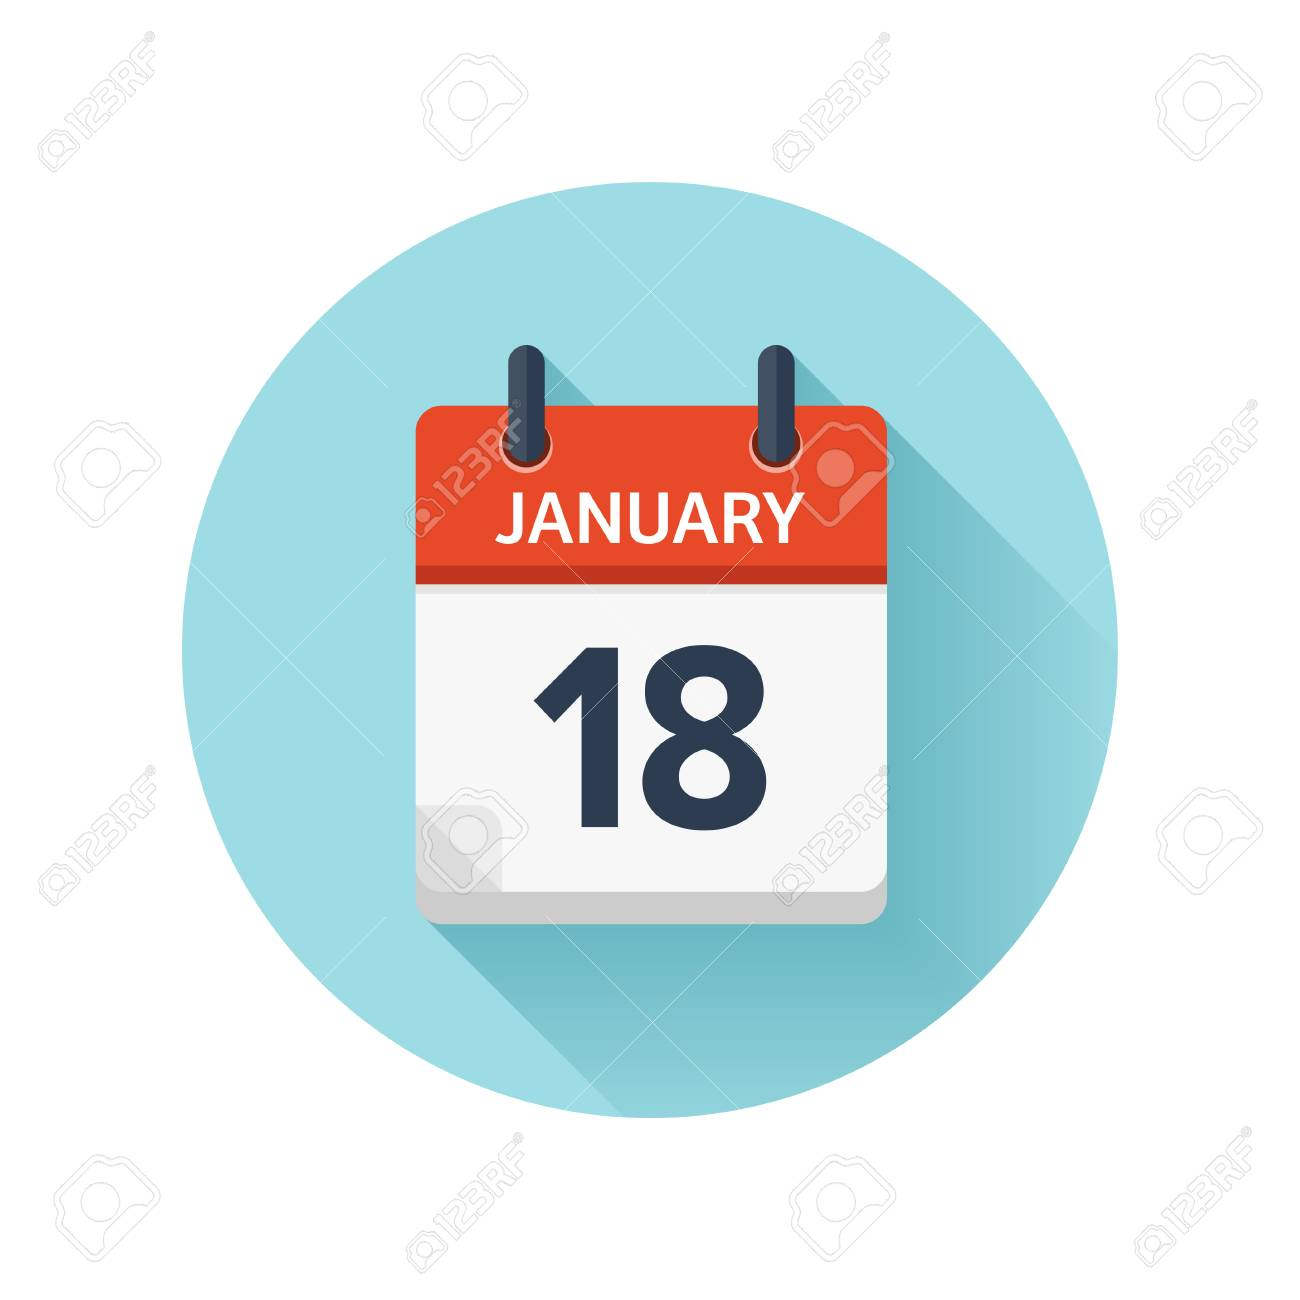 January 18 Vector Flat Daily Calendar Icon Date And Time Day